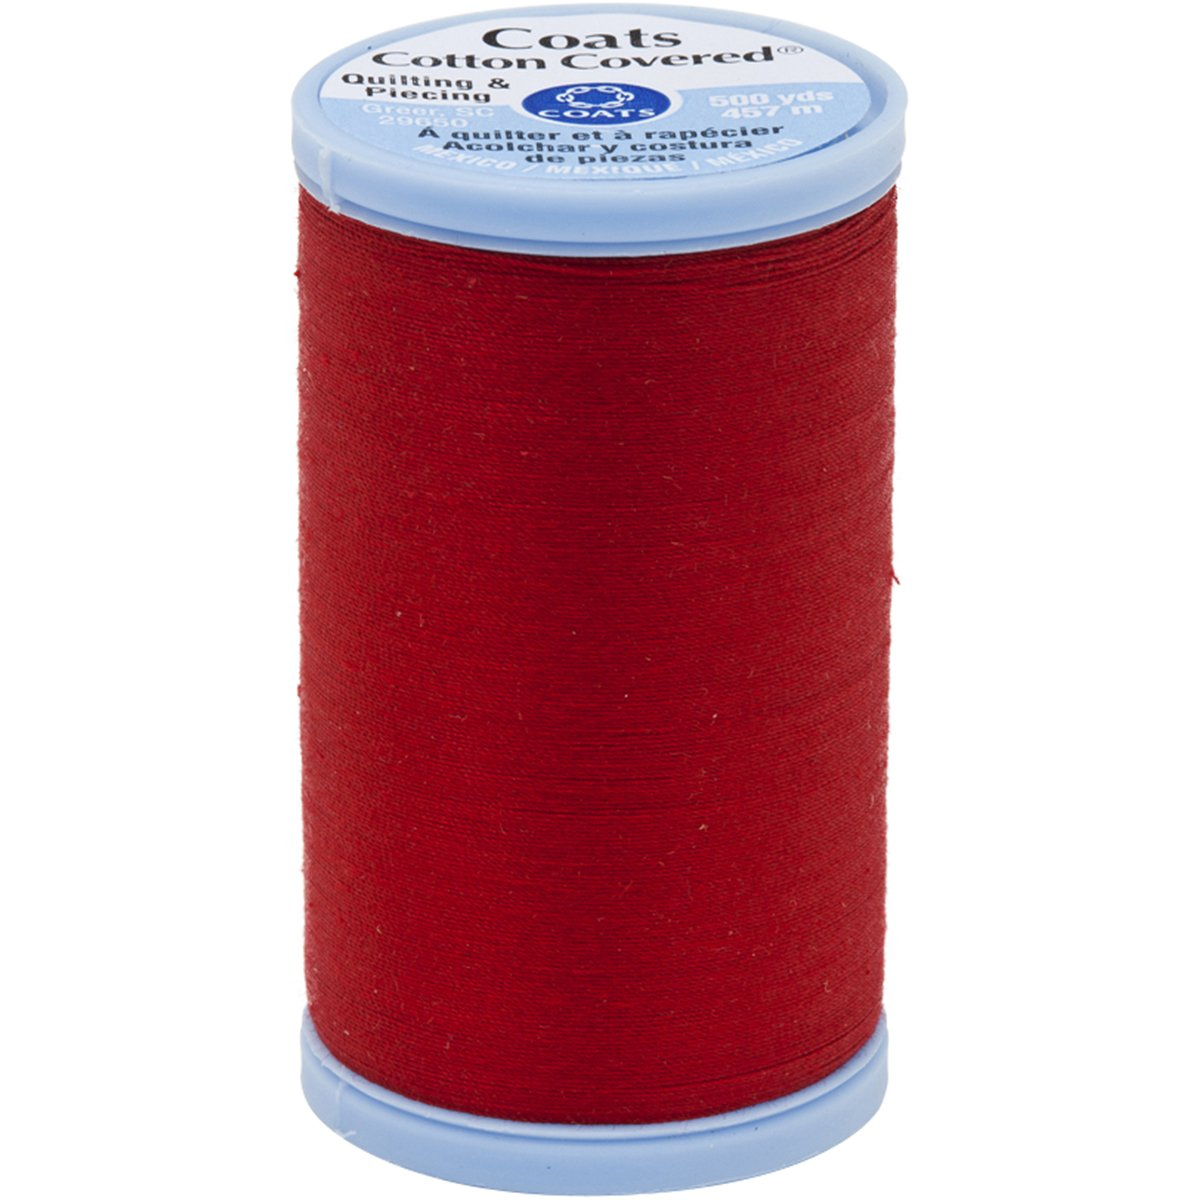 Coats Cotton Covered Quilting and Piecing Thread, 500-Yard, Red S926-2250